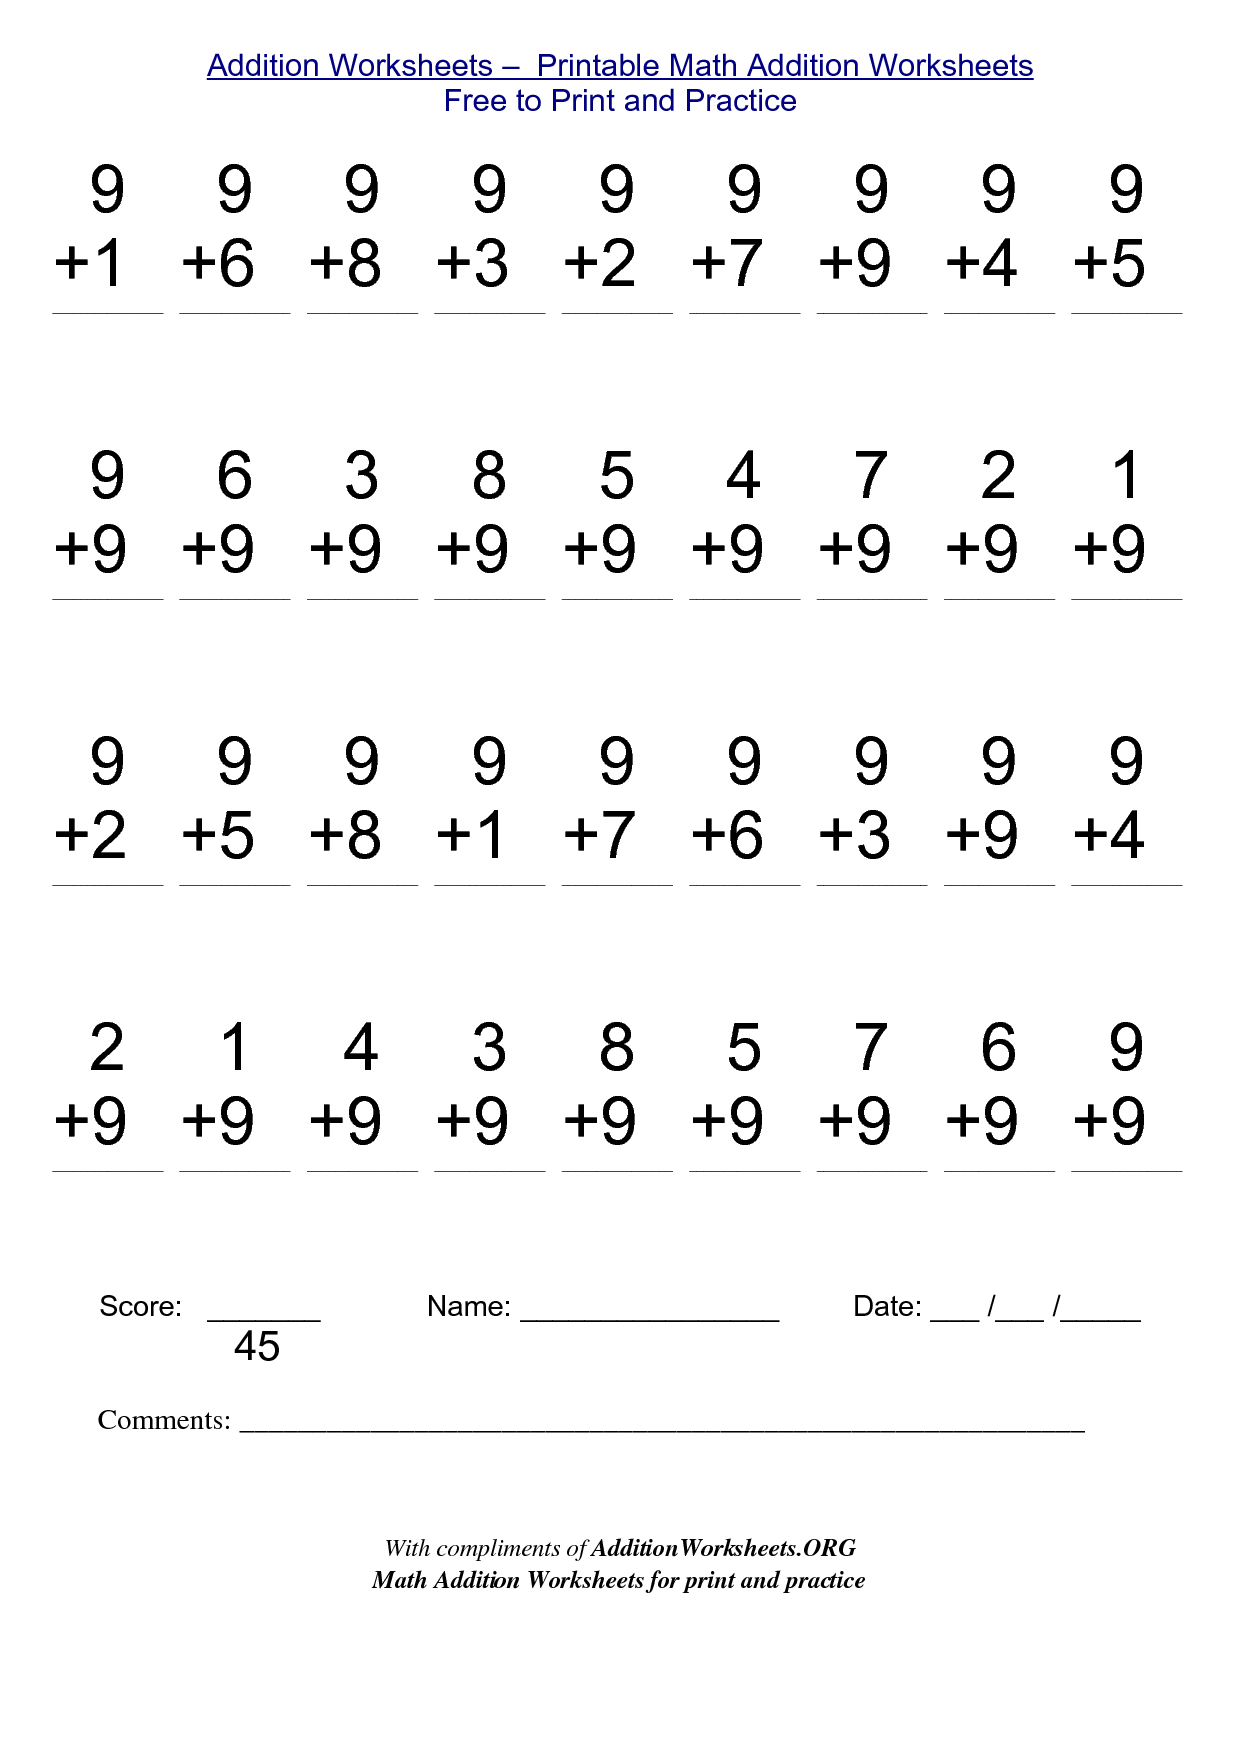 Math Worksheets for Free to Print Alot ME – Math Worksheets to Print for 2nd Graders